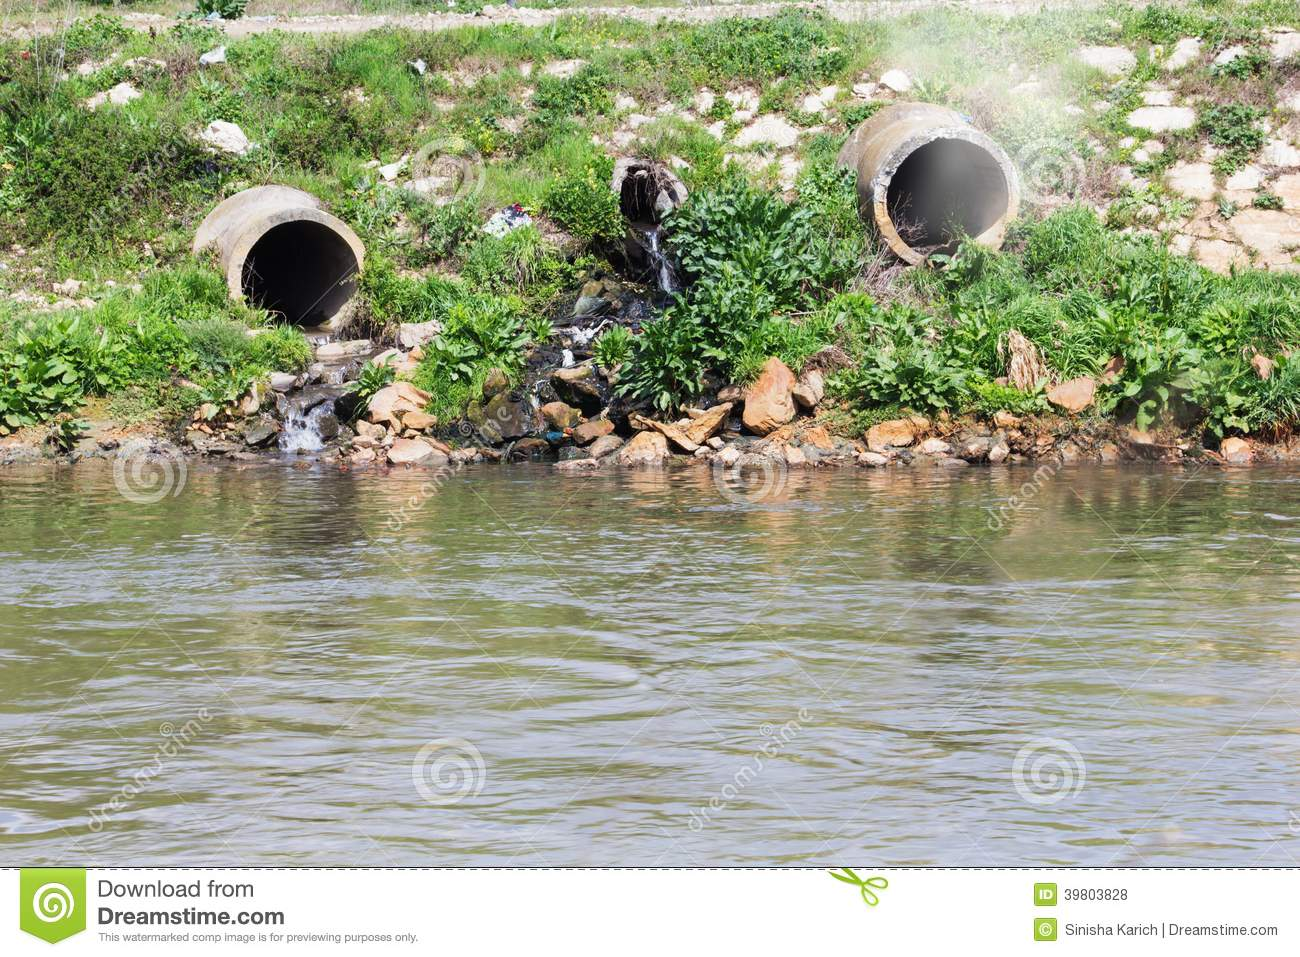 biology pollution Pollution facts: pollution can be described as contamination of air, water and soil by introduction of a contaminant into a natural environment, usually by humans.